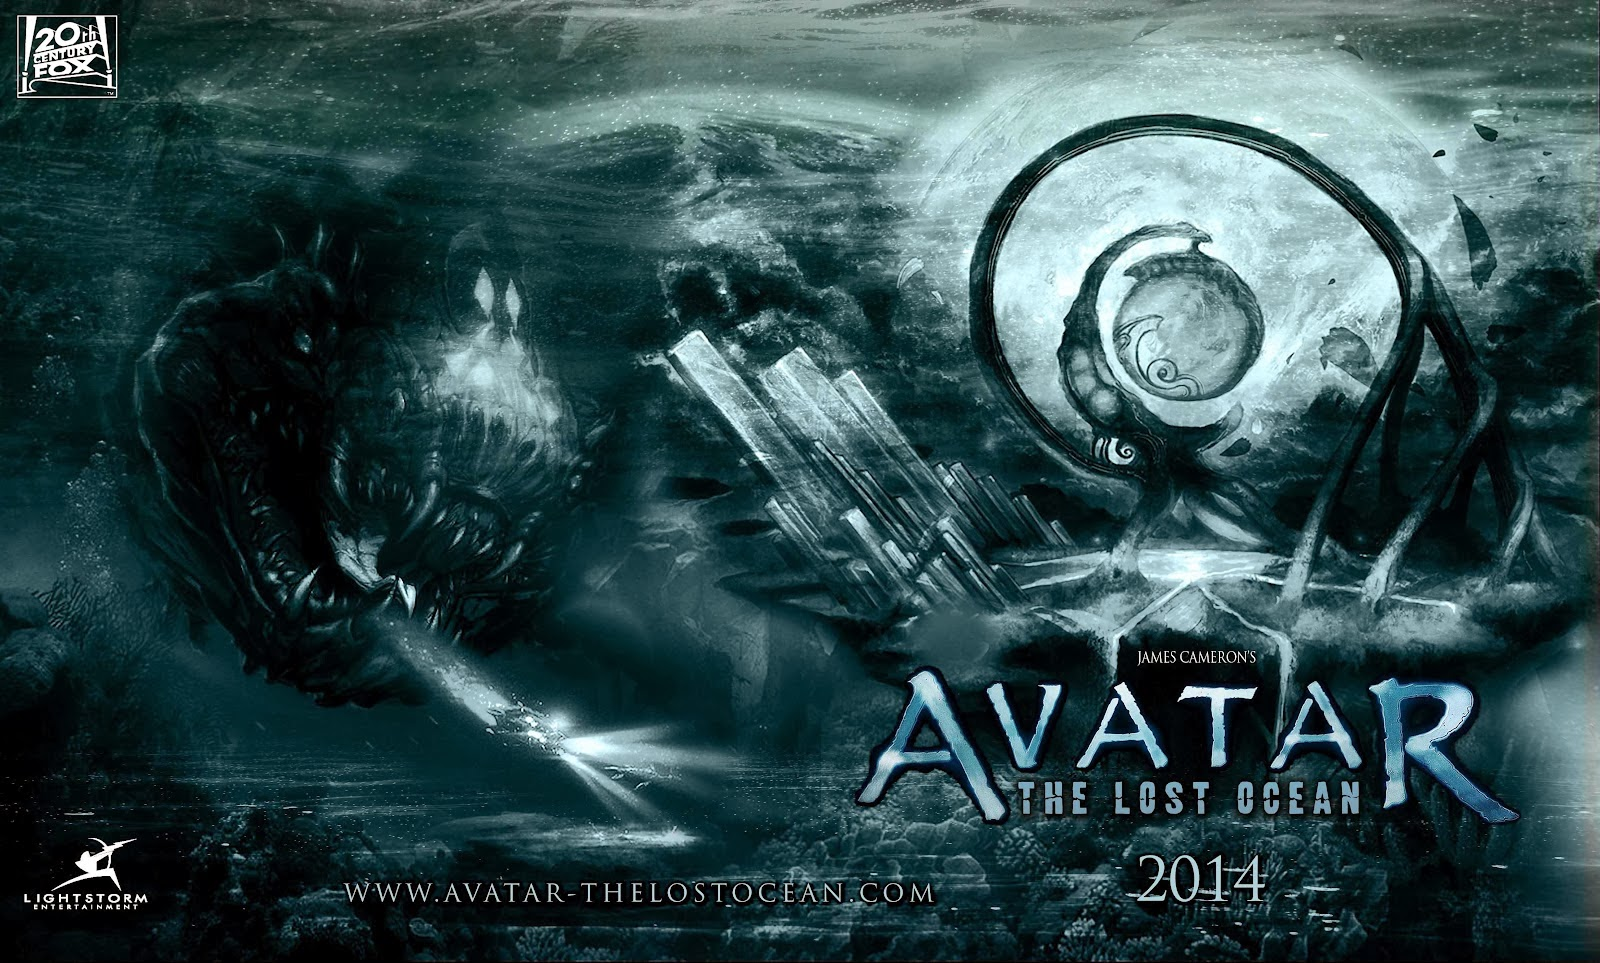 Steal This Review: James Cameron shooting 'Avatar' sequels